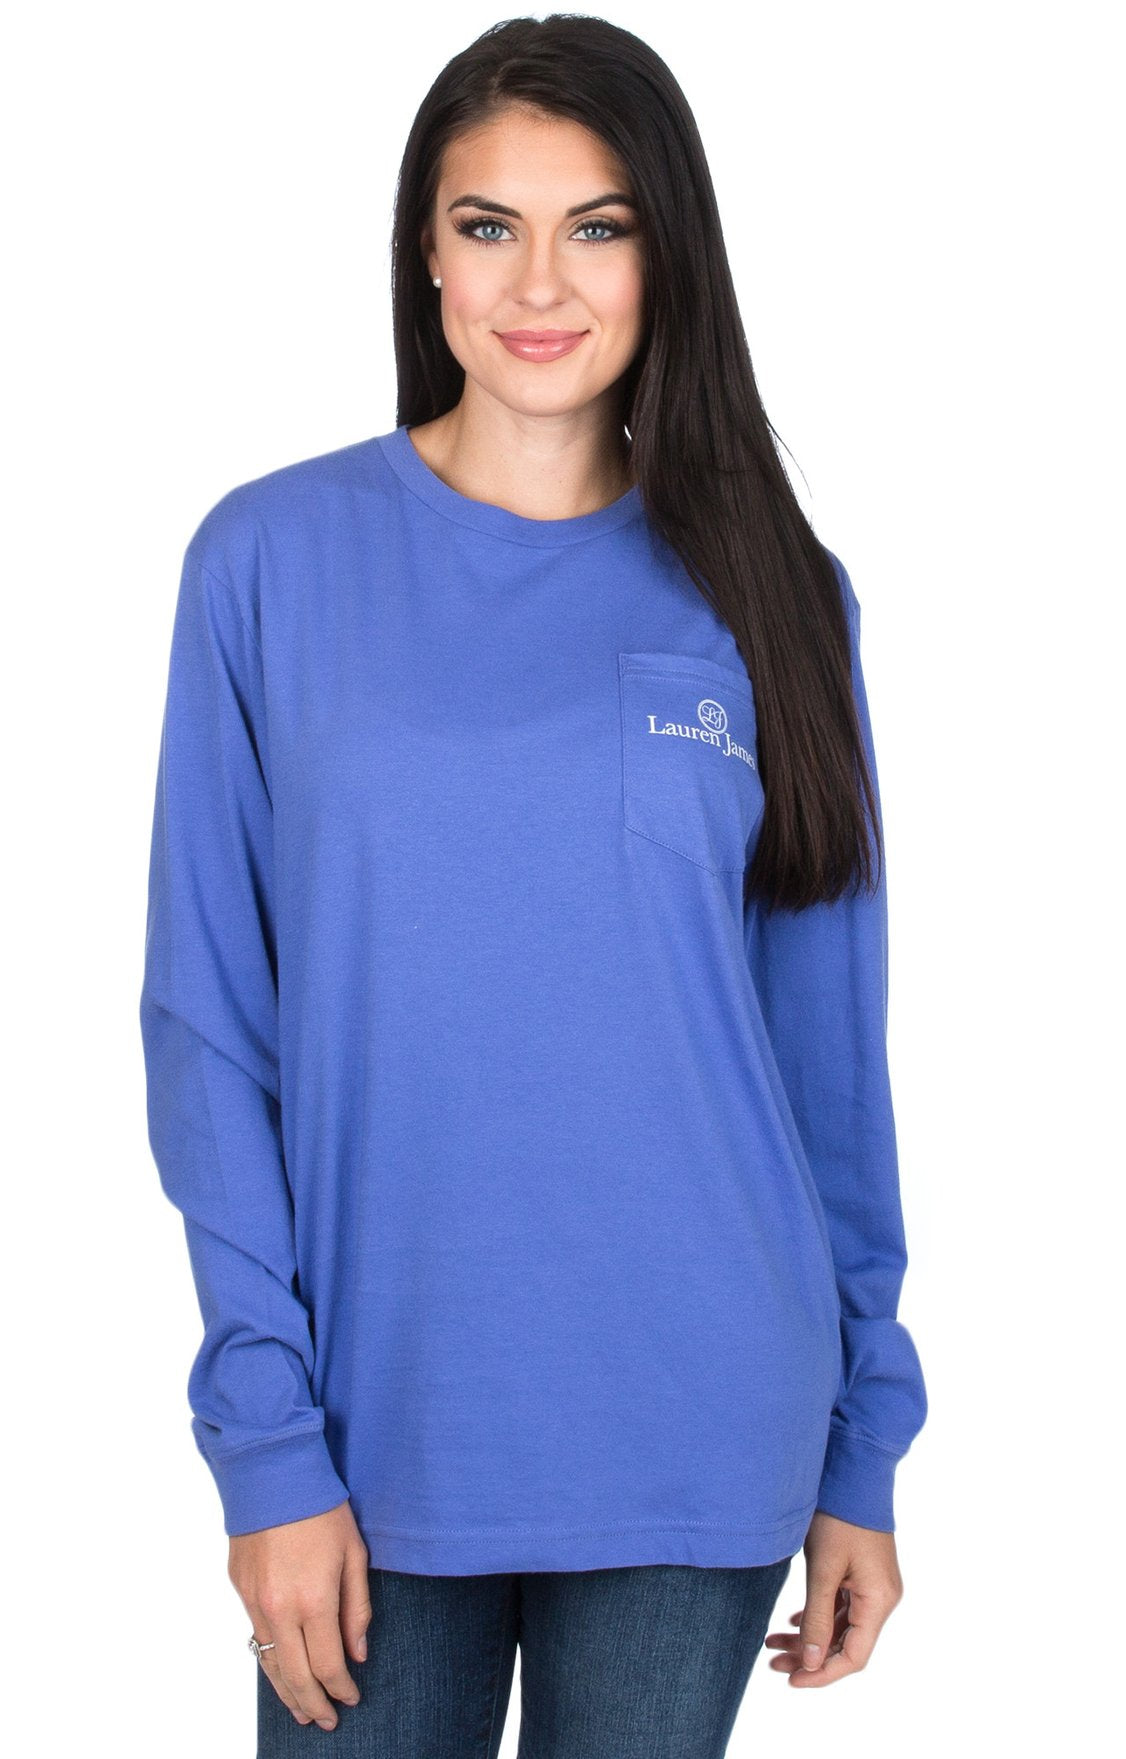 Lauren James Peace and Pearls Long Sleeve Tee